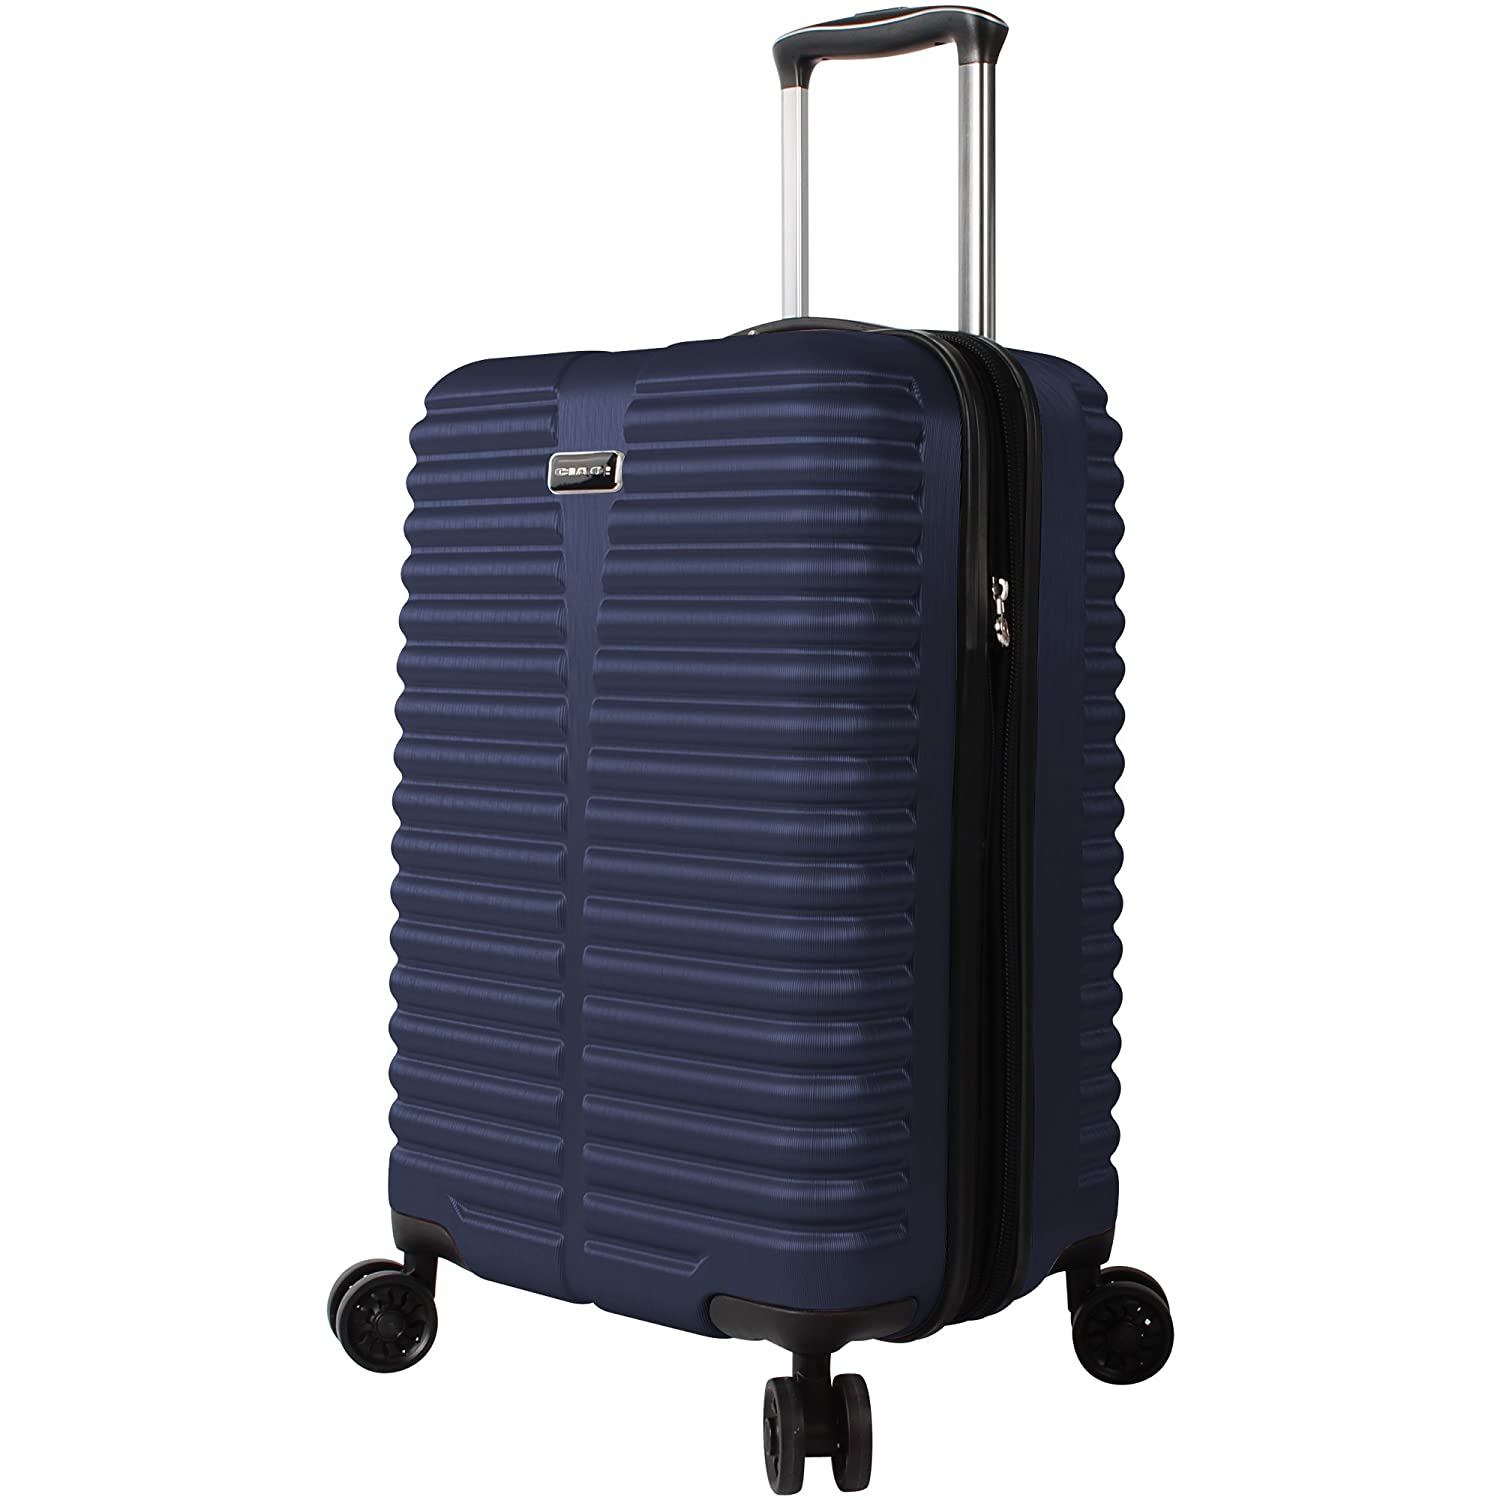 Ciao Carry On 100% PC Lightweight Expandable Luggage with Spinner Wheels (20in, Black)